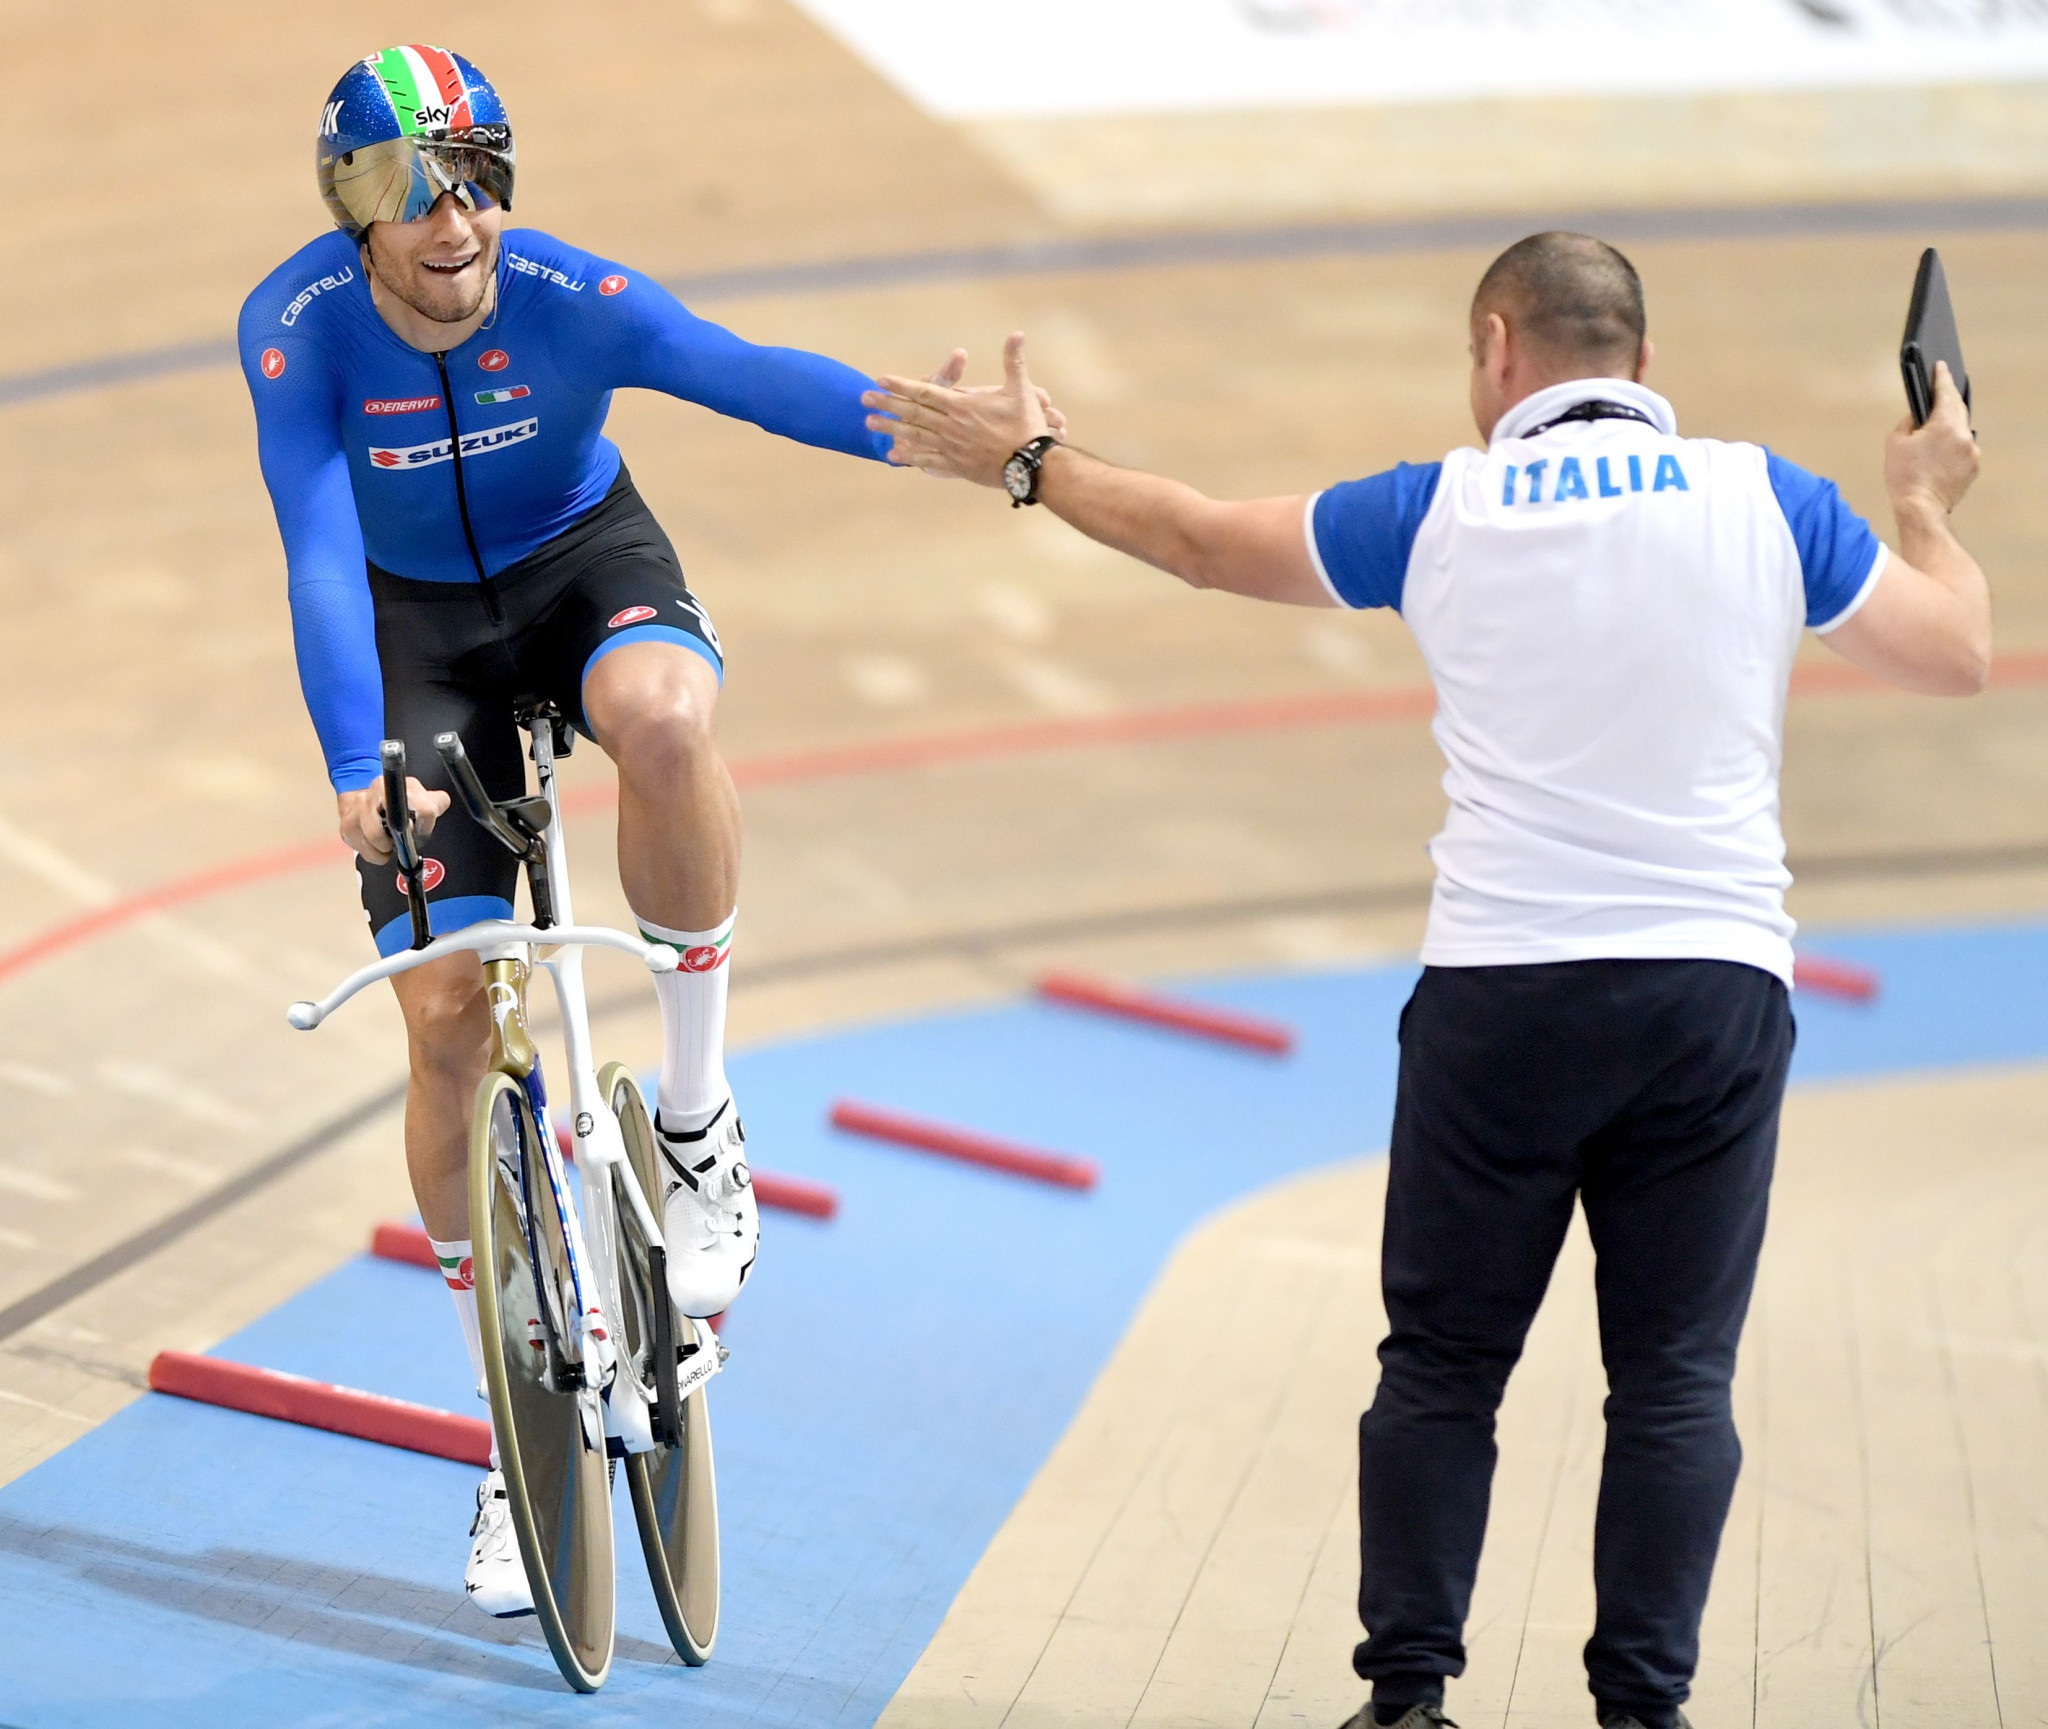 Filippo Ganna defended his men's individual pursuit title ©Getty Images